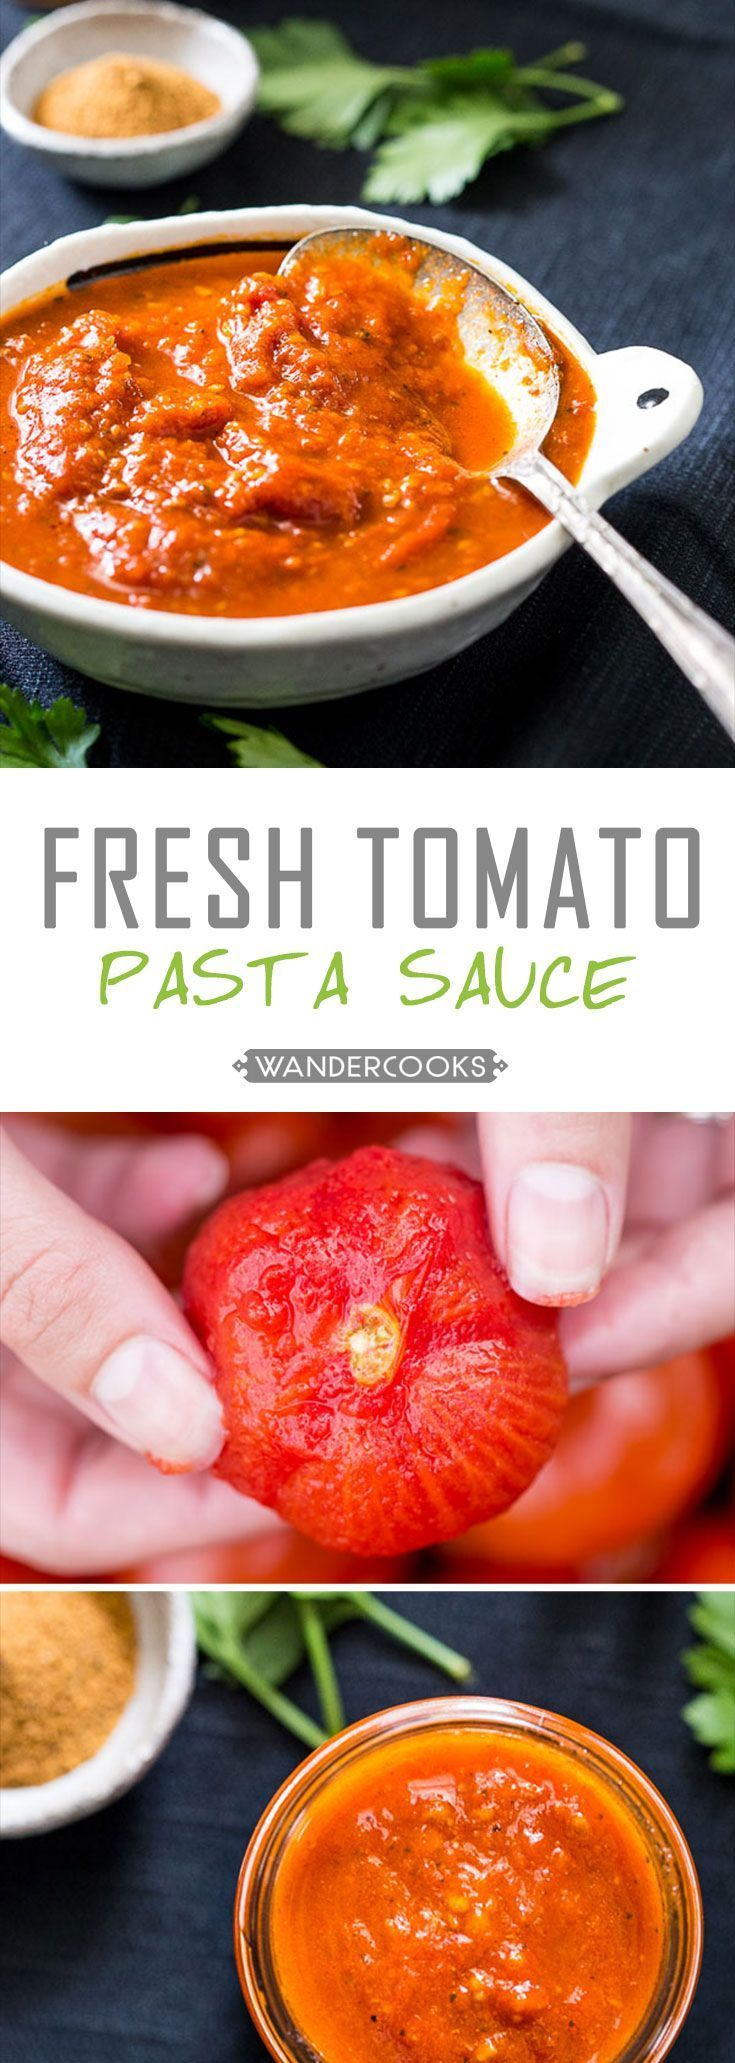 Fresh Tomato Pasta Sauce From Scratch